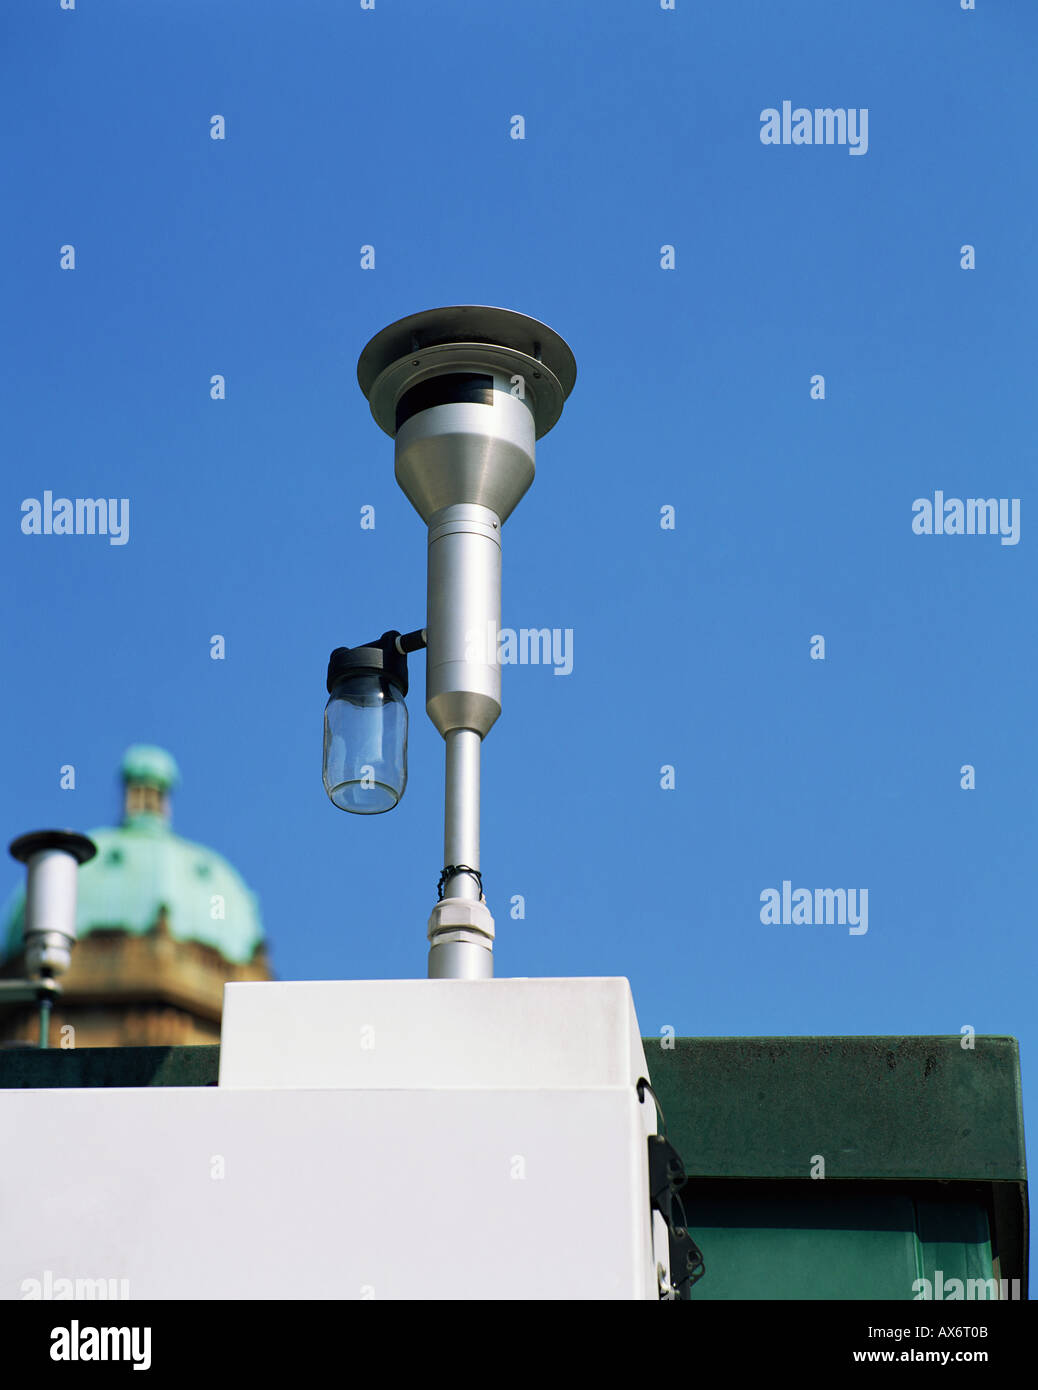 Air pollution monitor - Stock Image